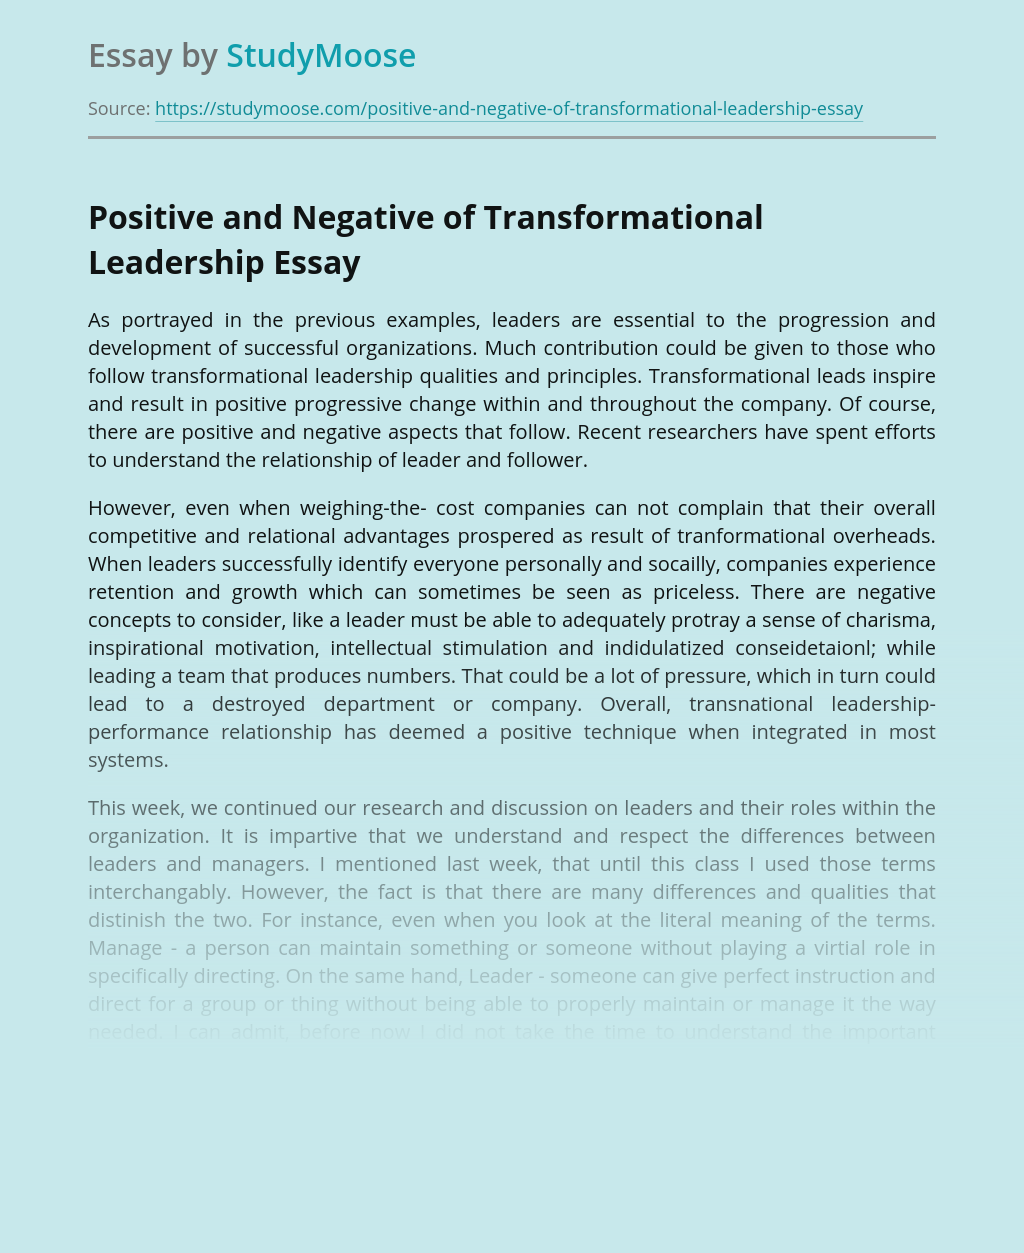 Positive and Negative of Transformational Leadership